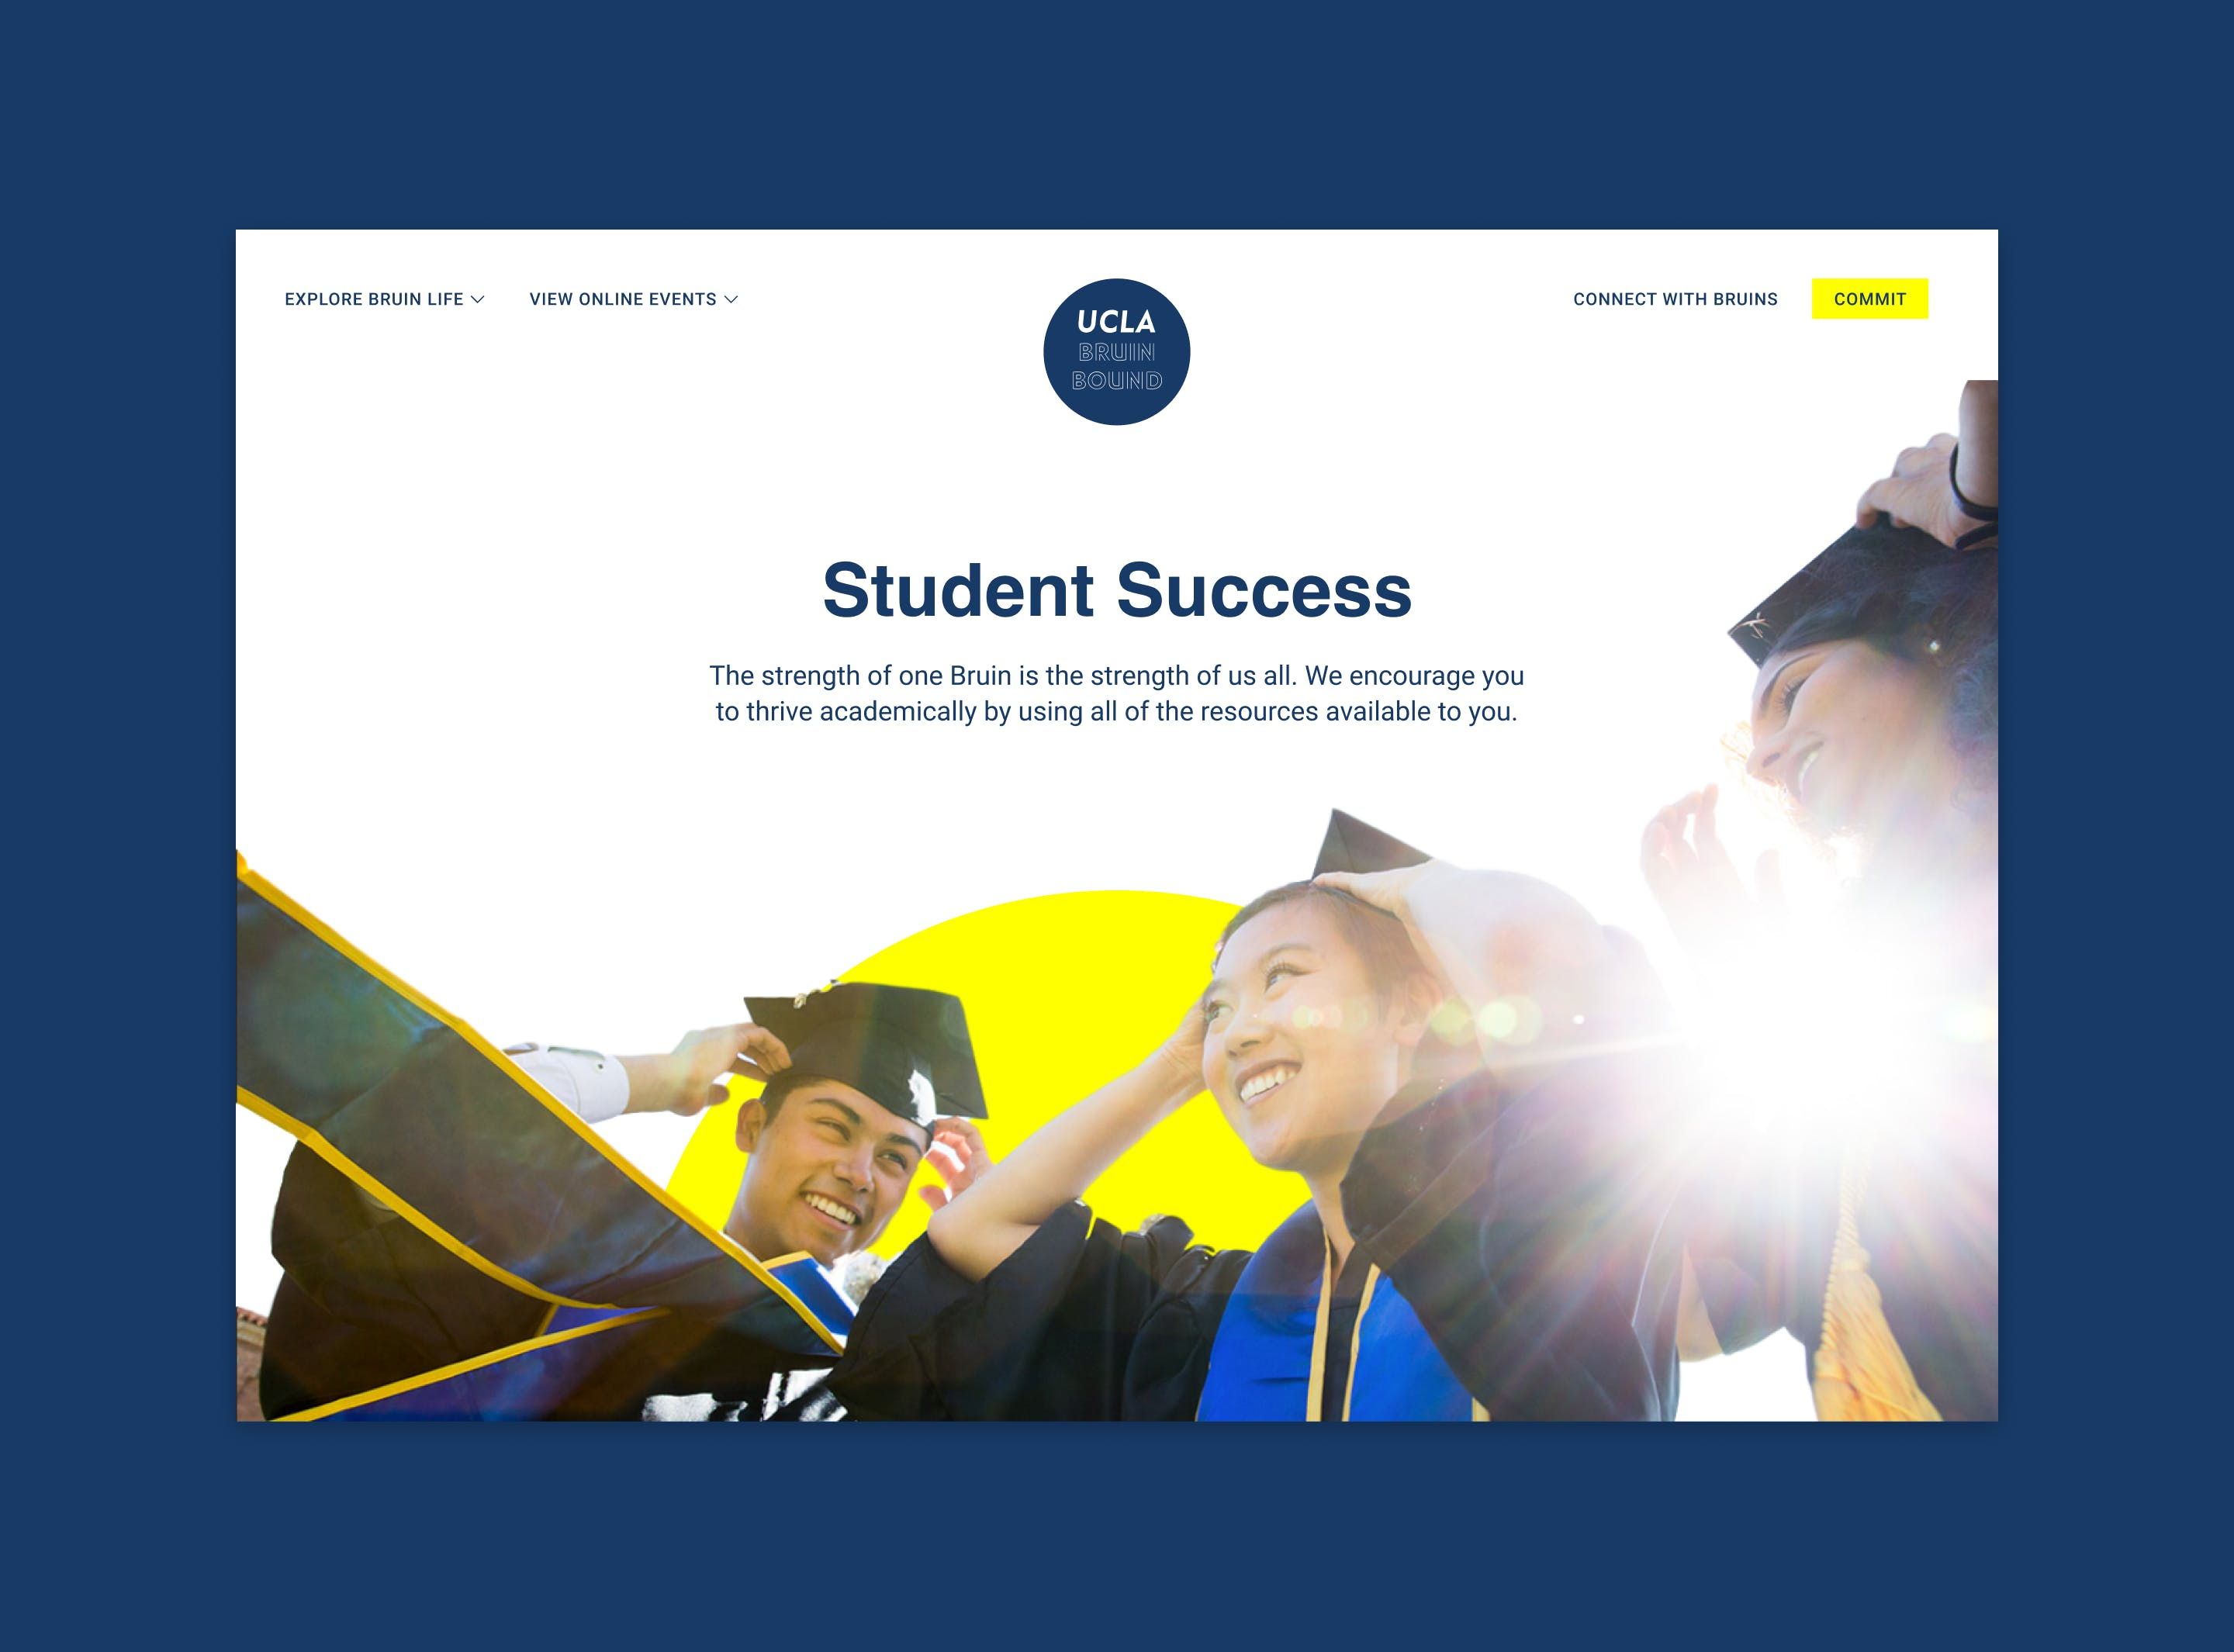 Image of UCLA Website on navy background. There is a Bruin Bound logo up top, and copy says Student Success The strength of one Bruin is the strength of us all. We encourage you to thrive academically by using all of the resources available to you. Underneath the text are three graduating students in cap and gown, one male and two females, all smiling.